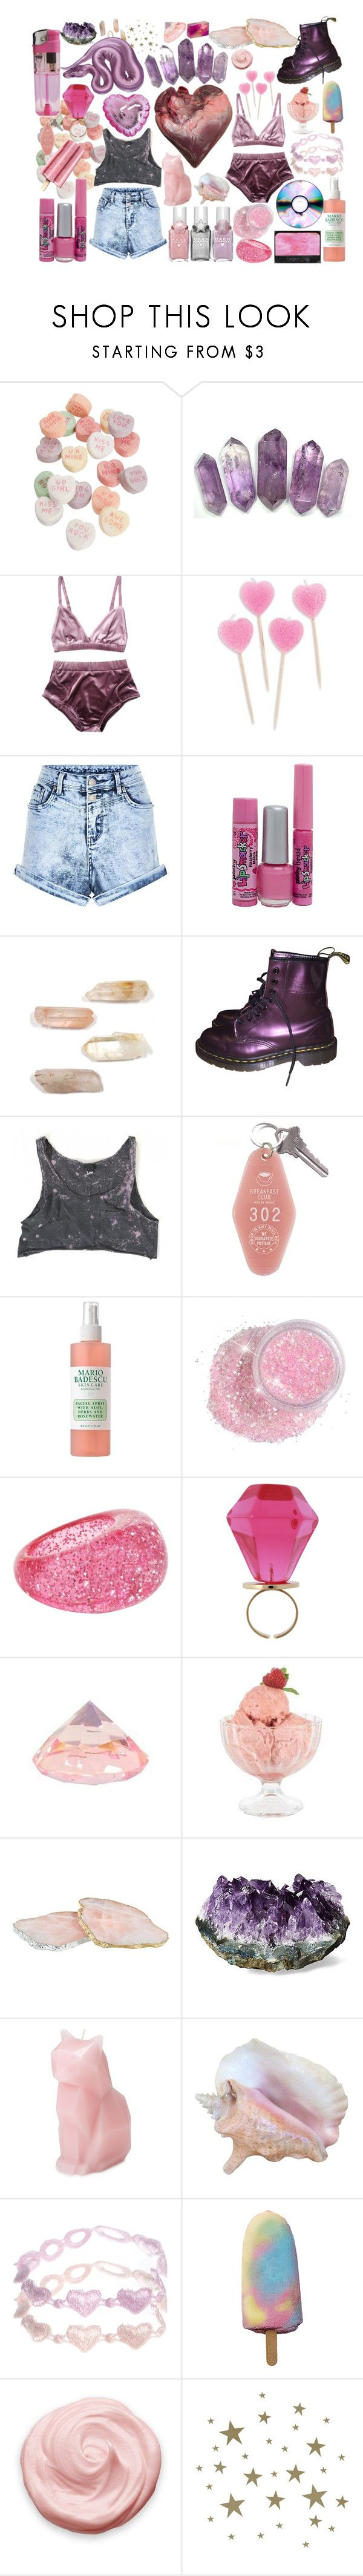 """""""candyfloss."""" by girlwiththepeacocktattoo ❤ liked on Polyvore featuring Bonne Bell, Dr. Martens, Mario Badescu Skin Care, Aéropostale, CO, Bormioli Rocco, RabLabs, ASOS and ferm LIVING"""